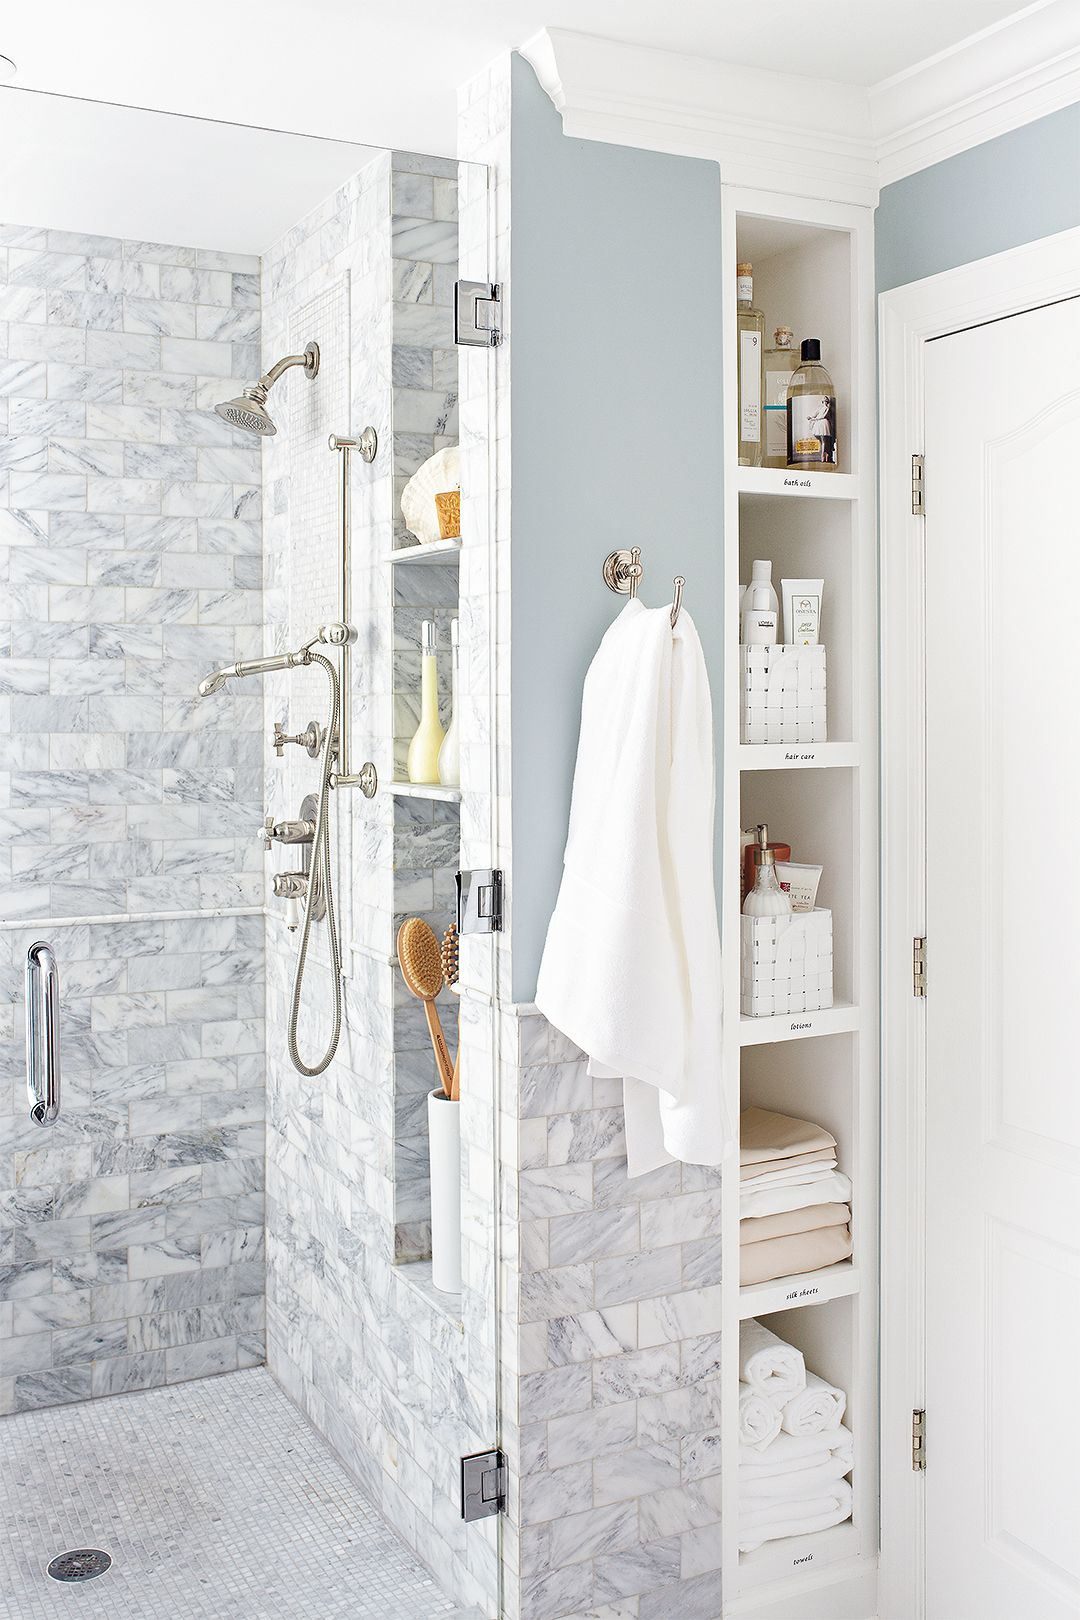 28 Towel Display Ideas For Pretty And Practical Bathroom Storage